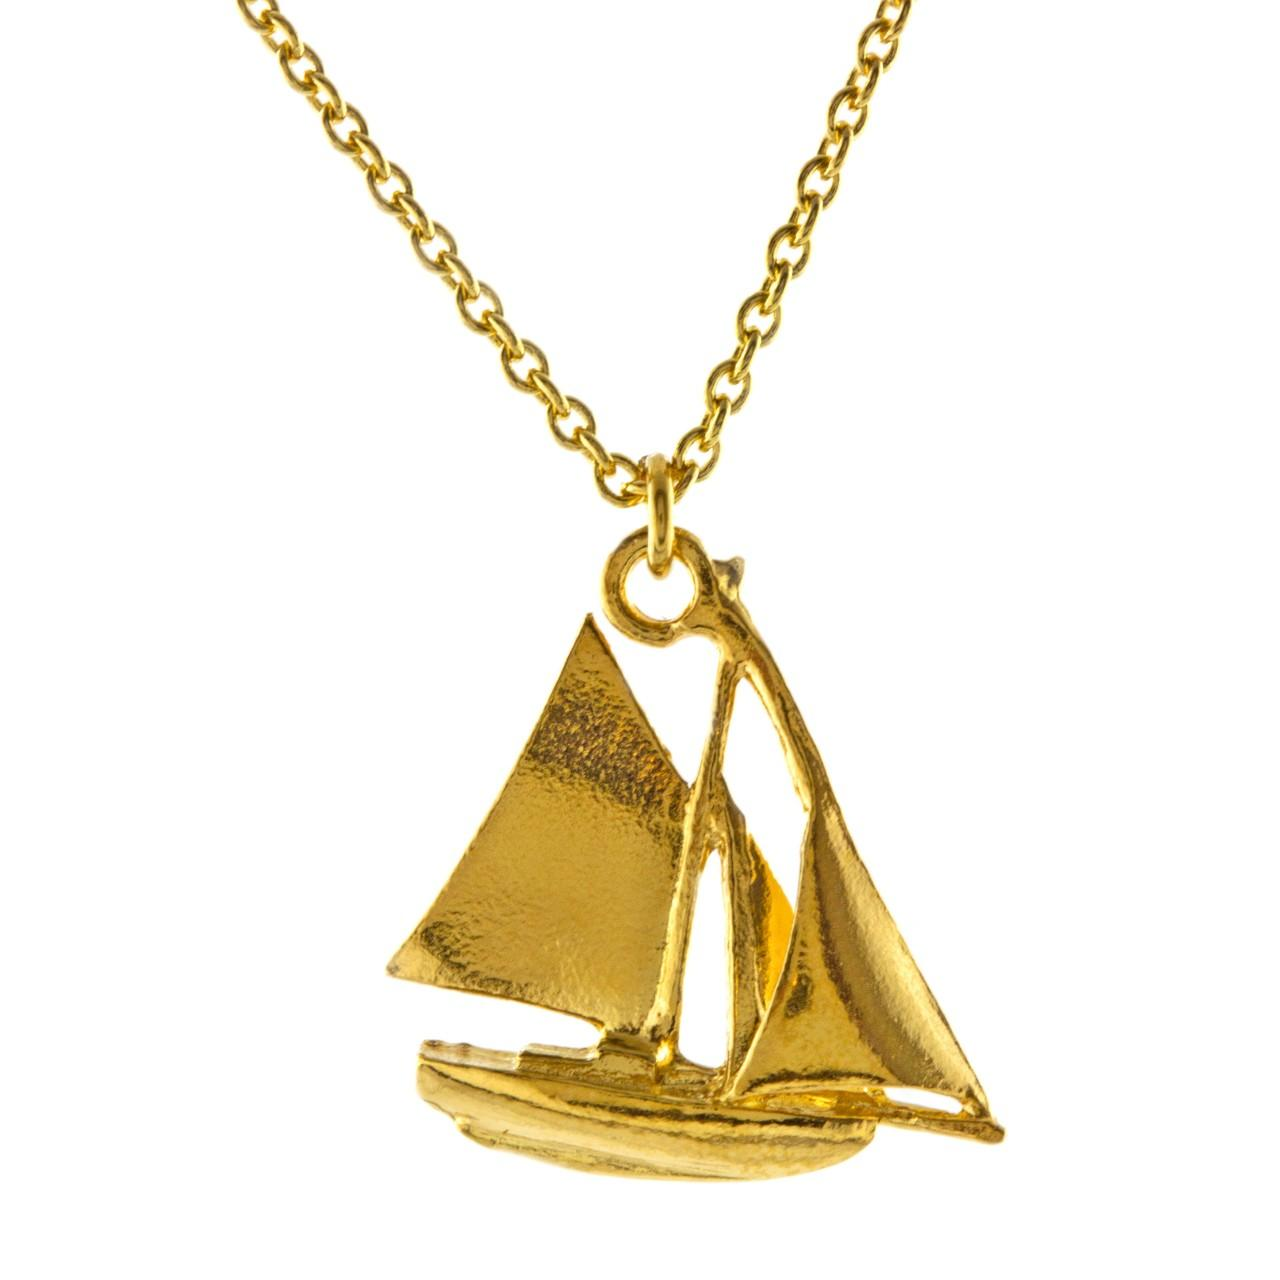 Silver gold plated sailing boat necklace £120 (available in store only)